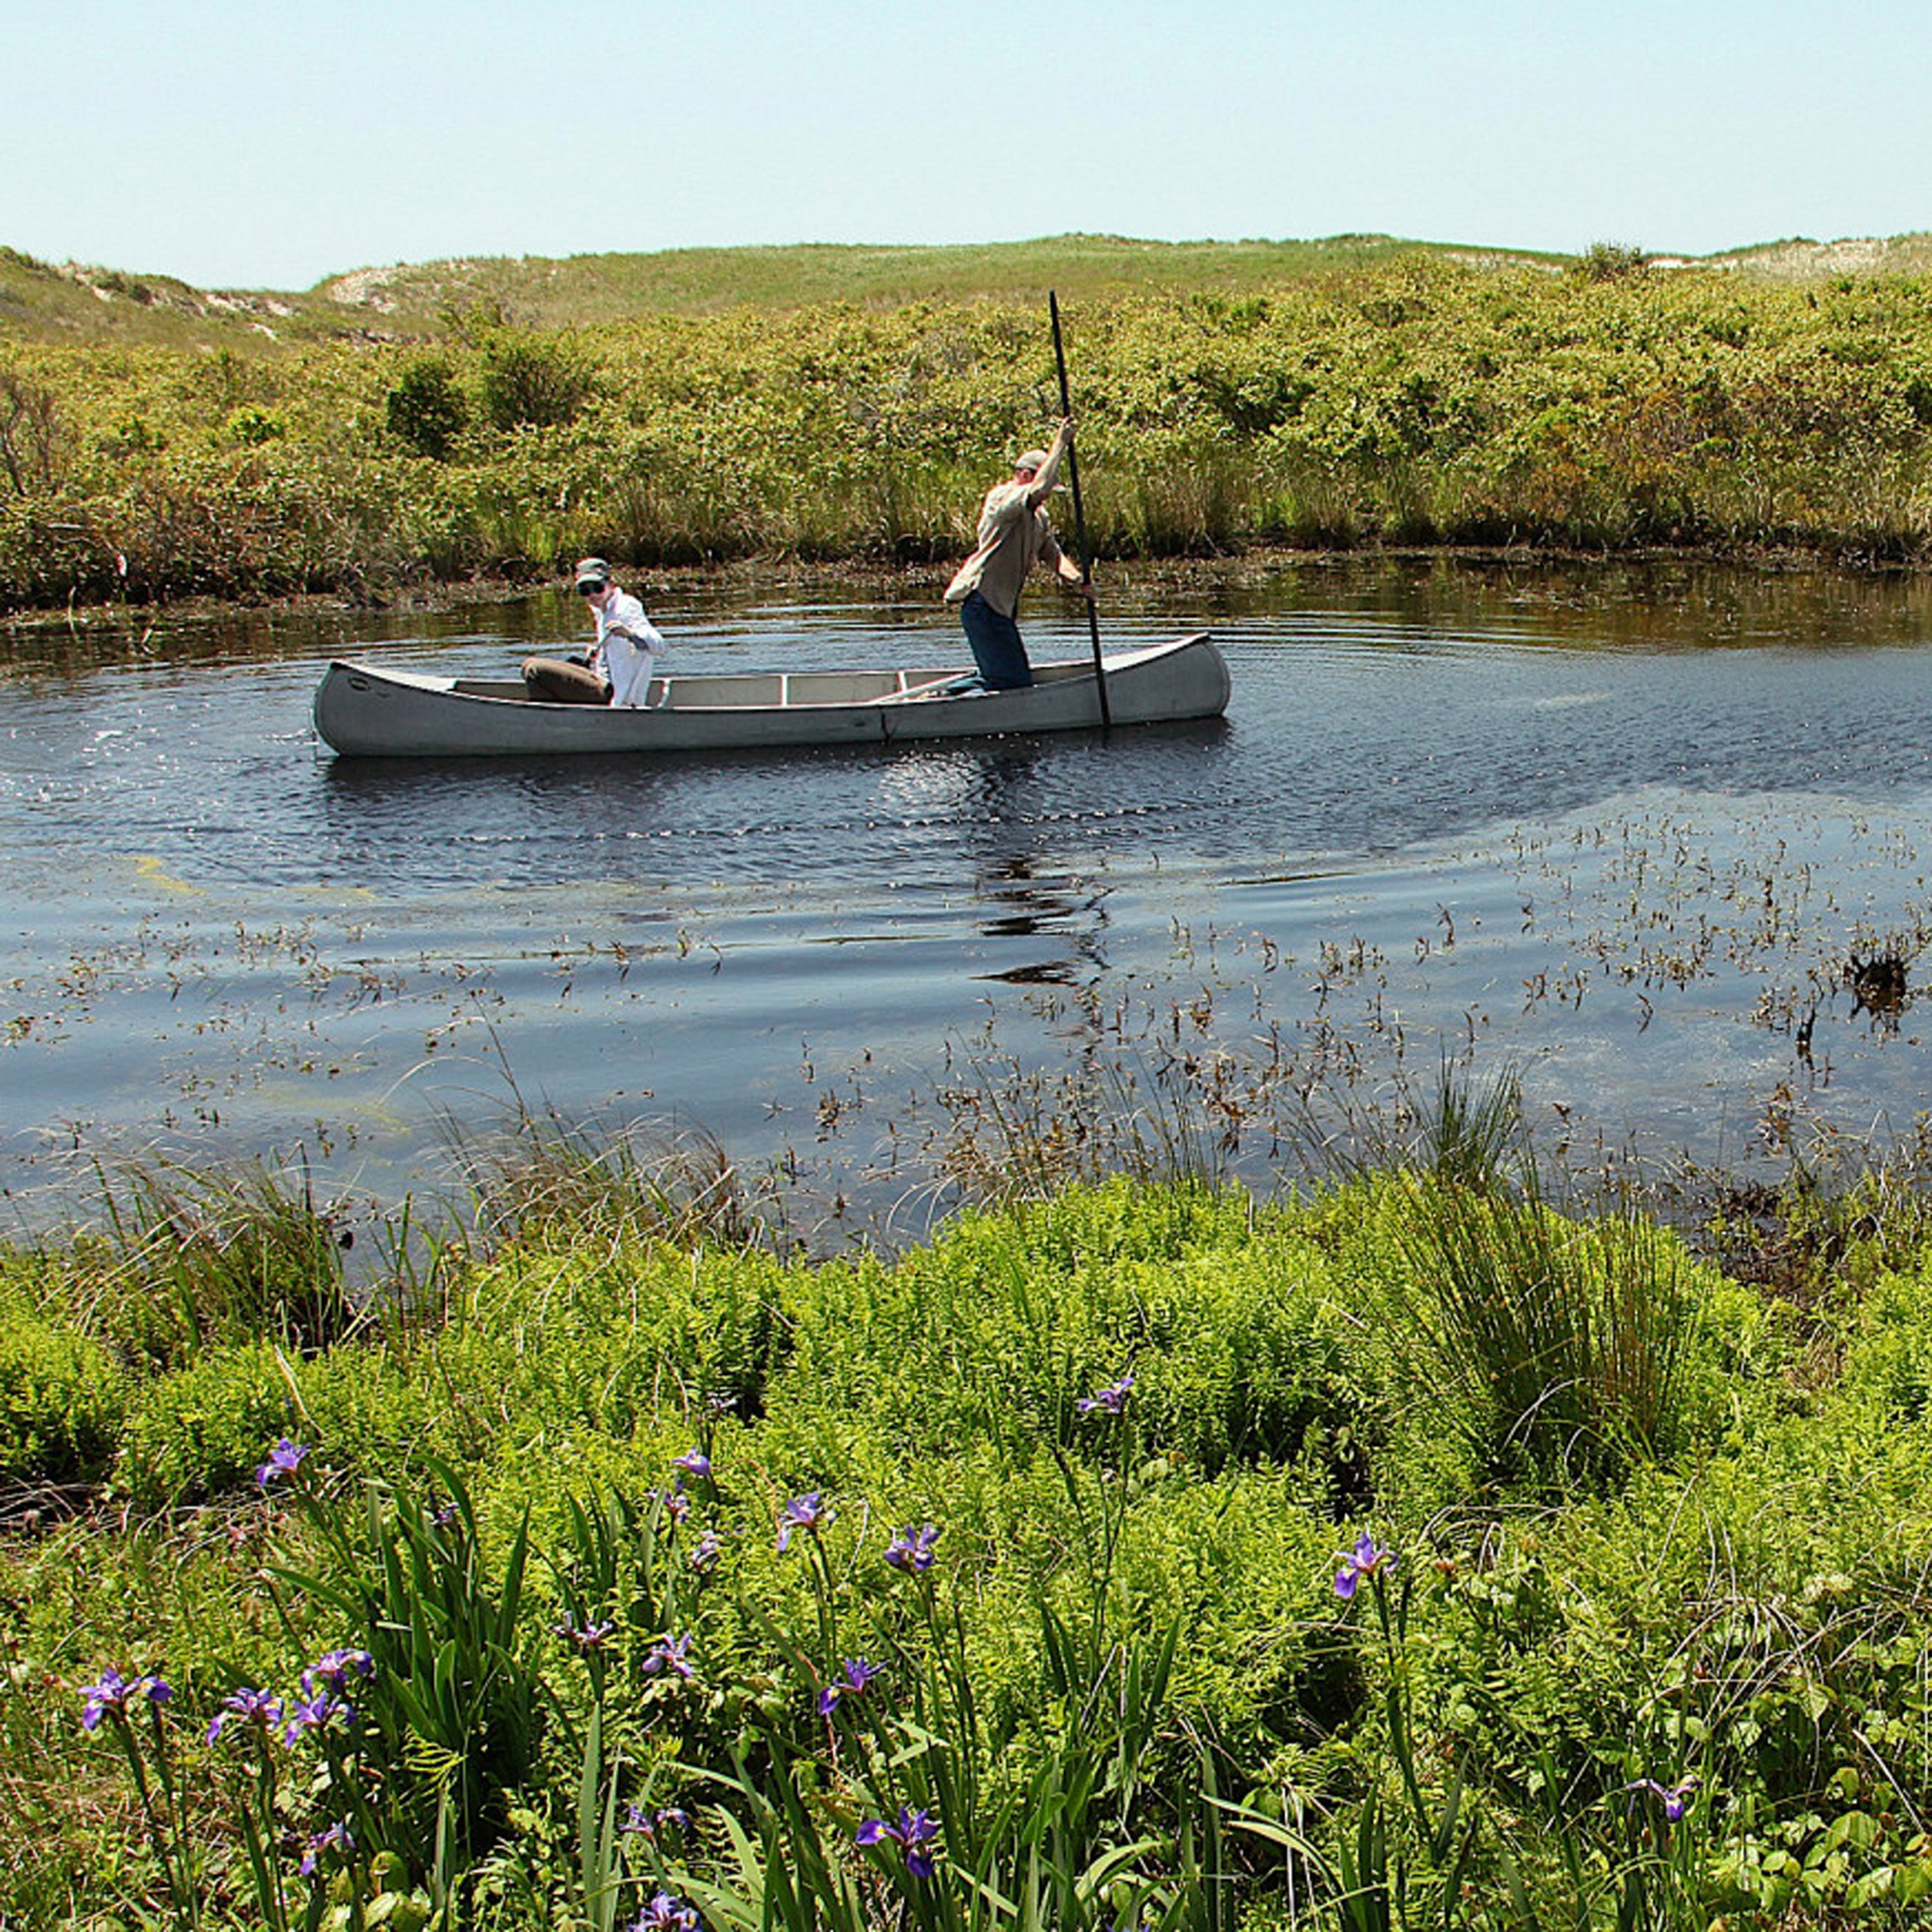 Two researchers in a paddleboat on a pond.